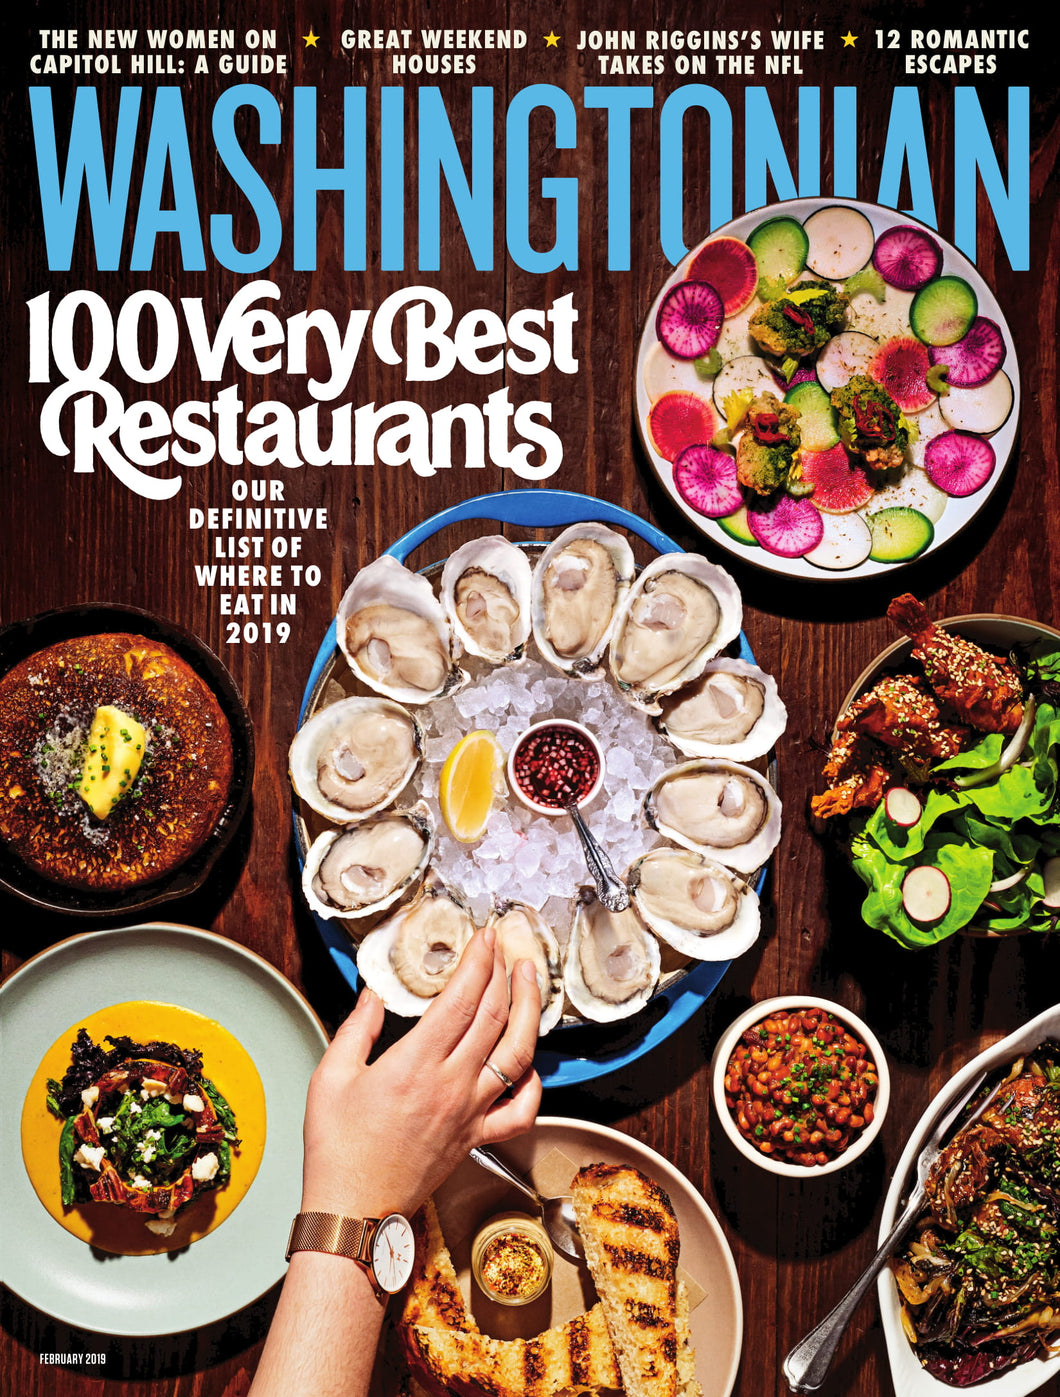 Washingtonian: February 2019 - 100 Very Best Restaurants